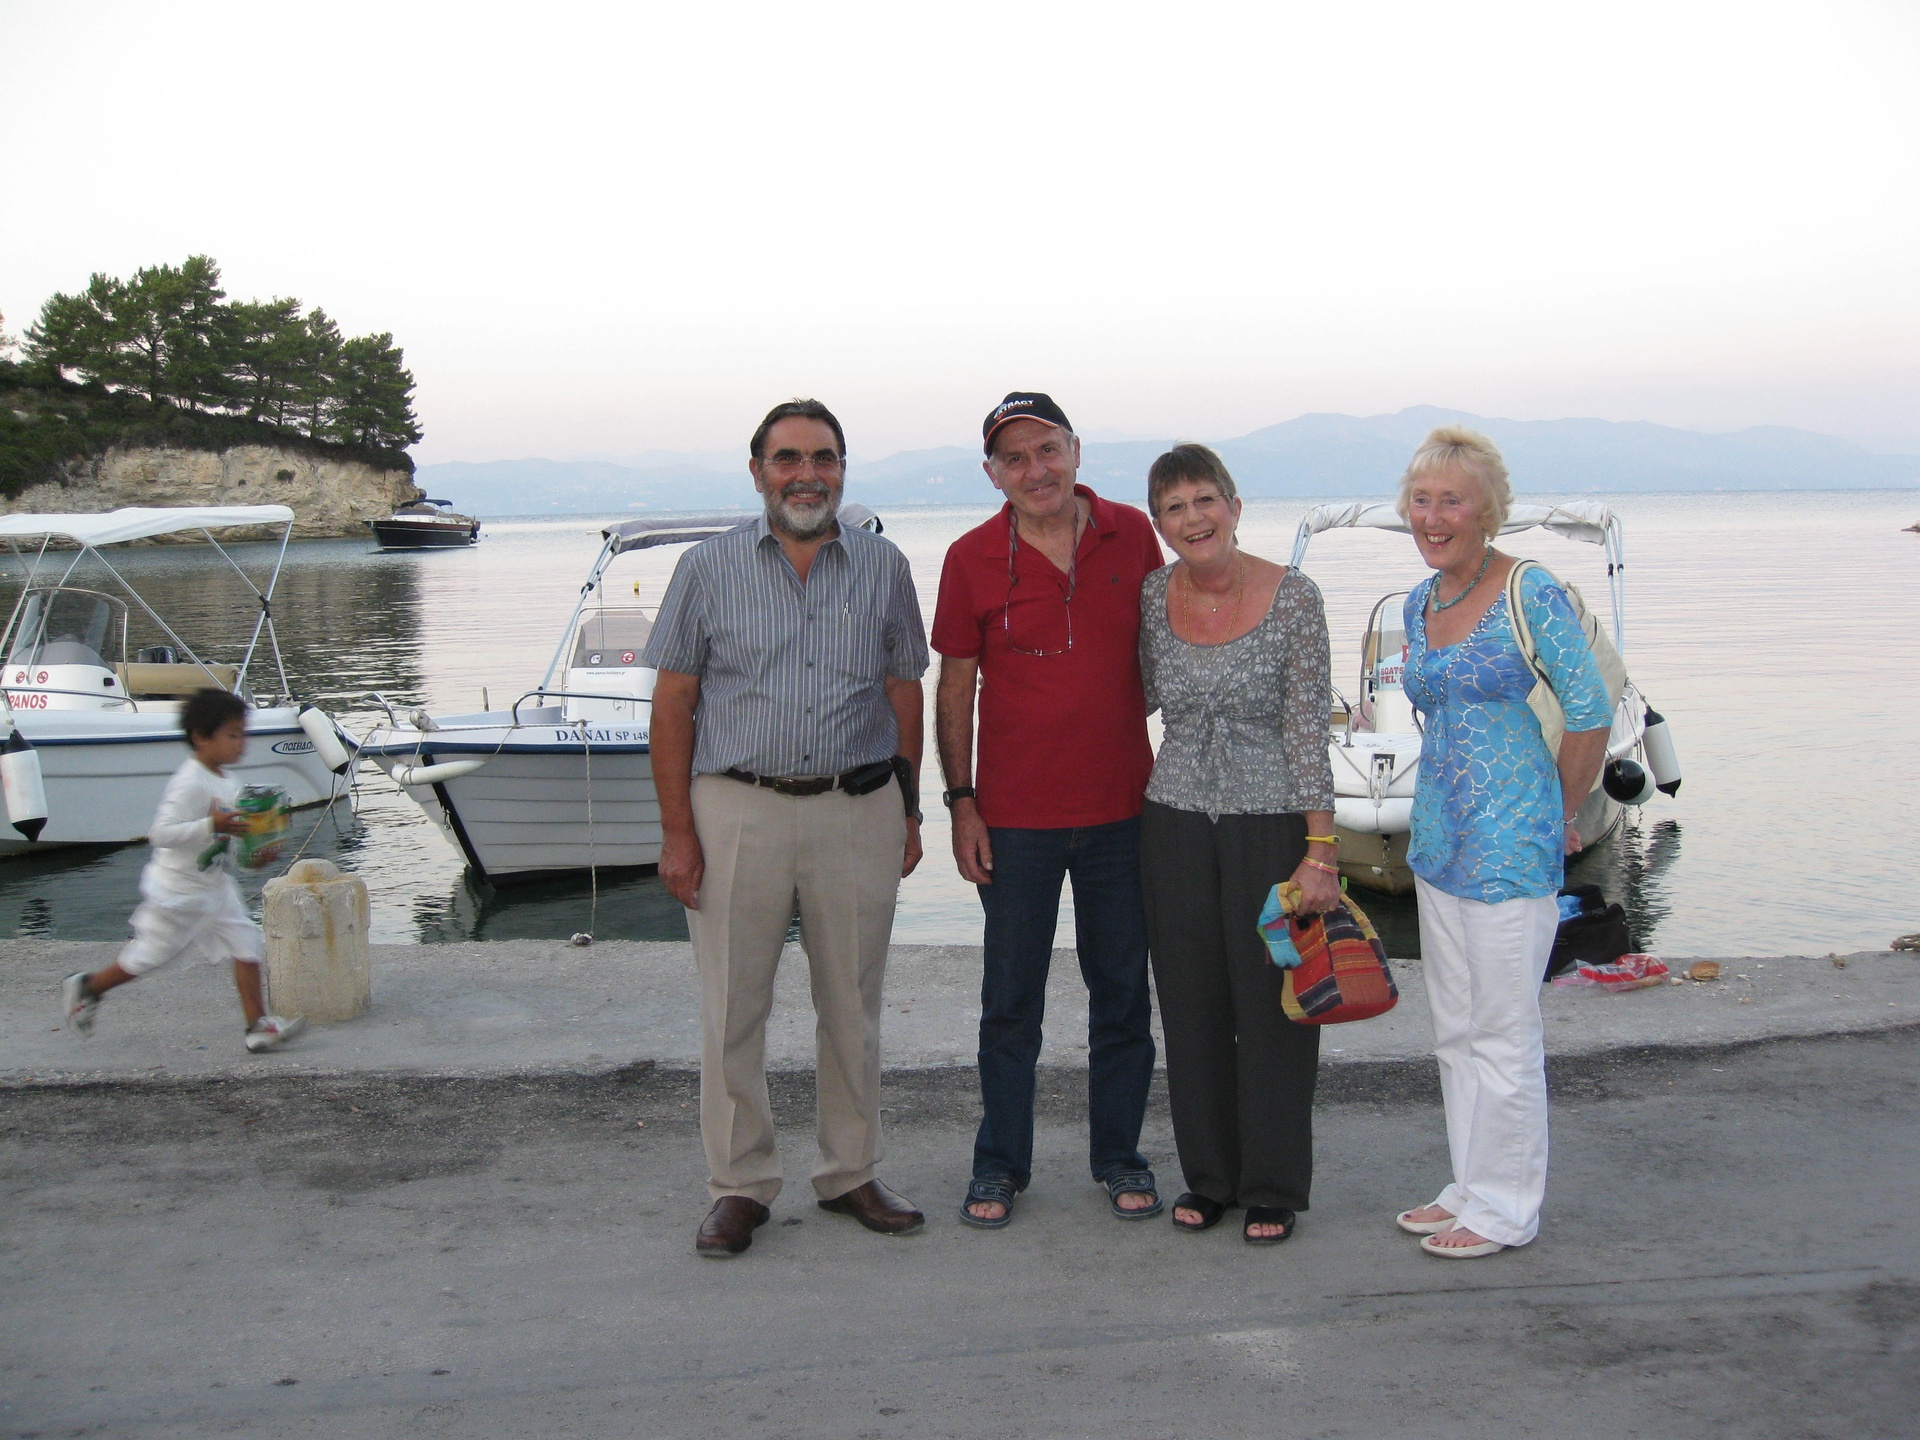 PAWS team with Derek & Jenny in Loggos